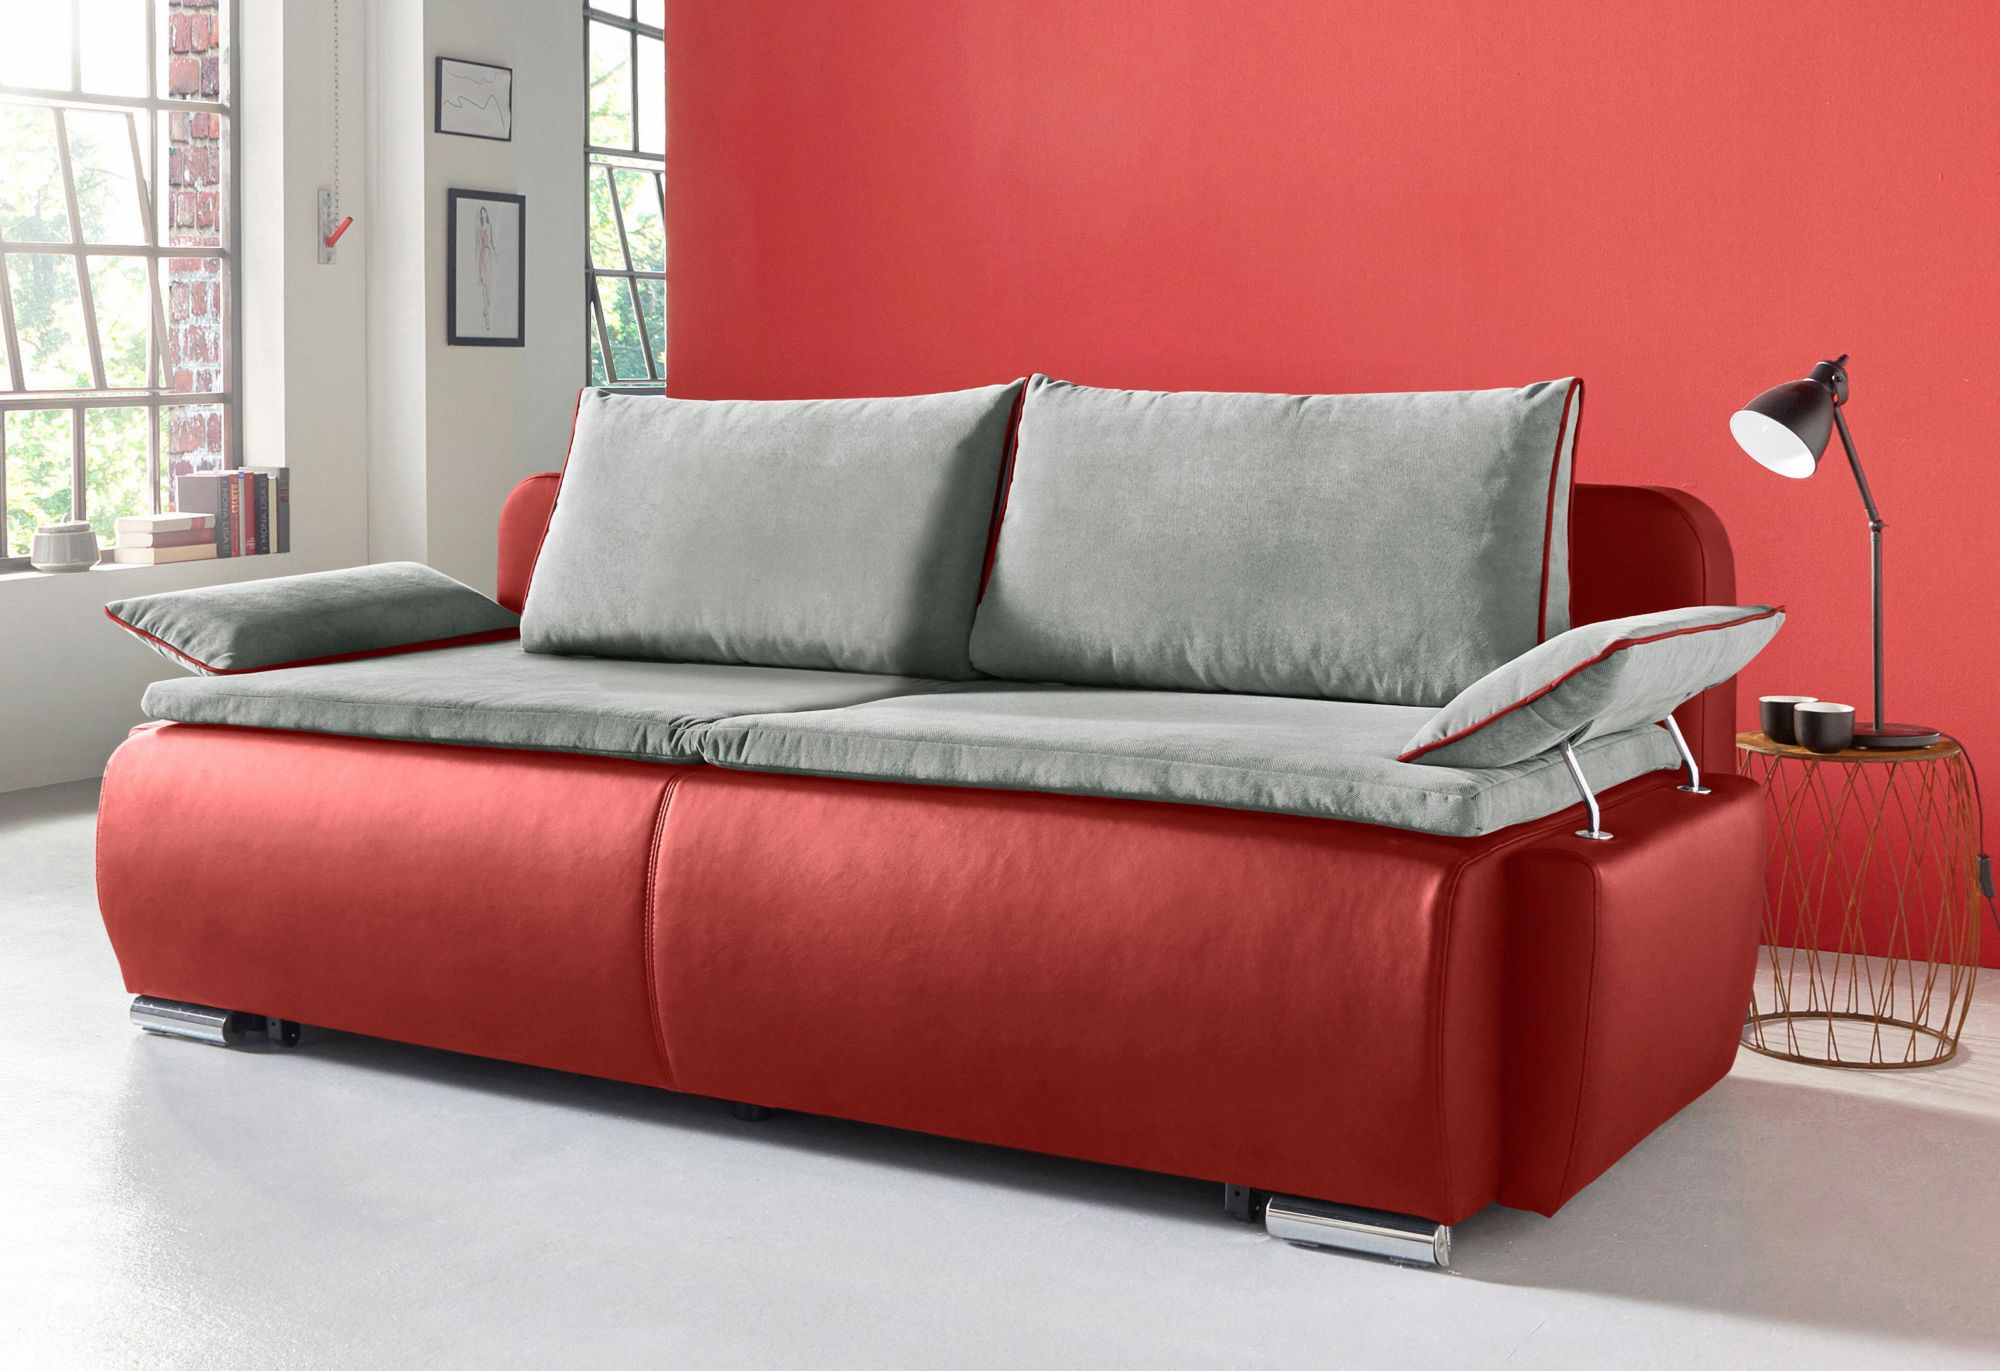 COLLECTION AB Collection AB Schlafsofa mit Boxspring-Aufbau